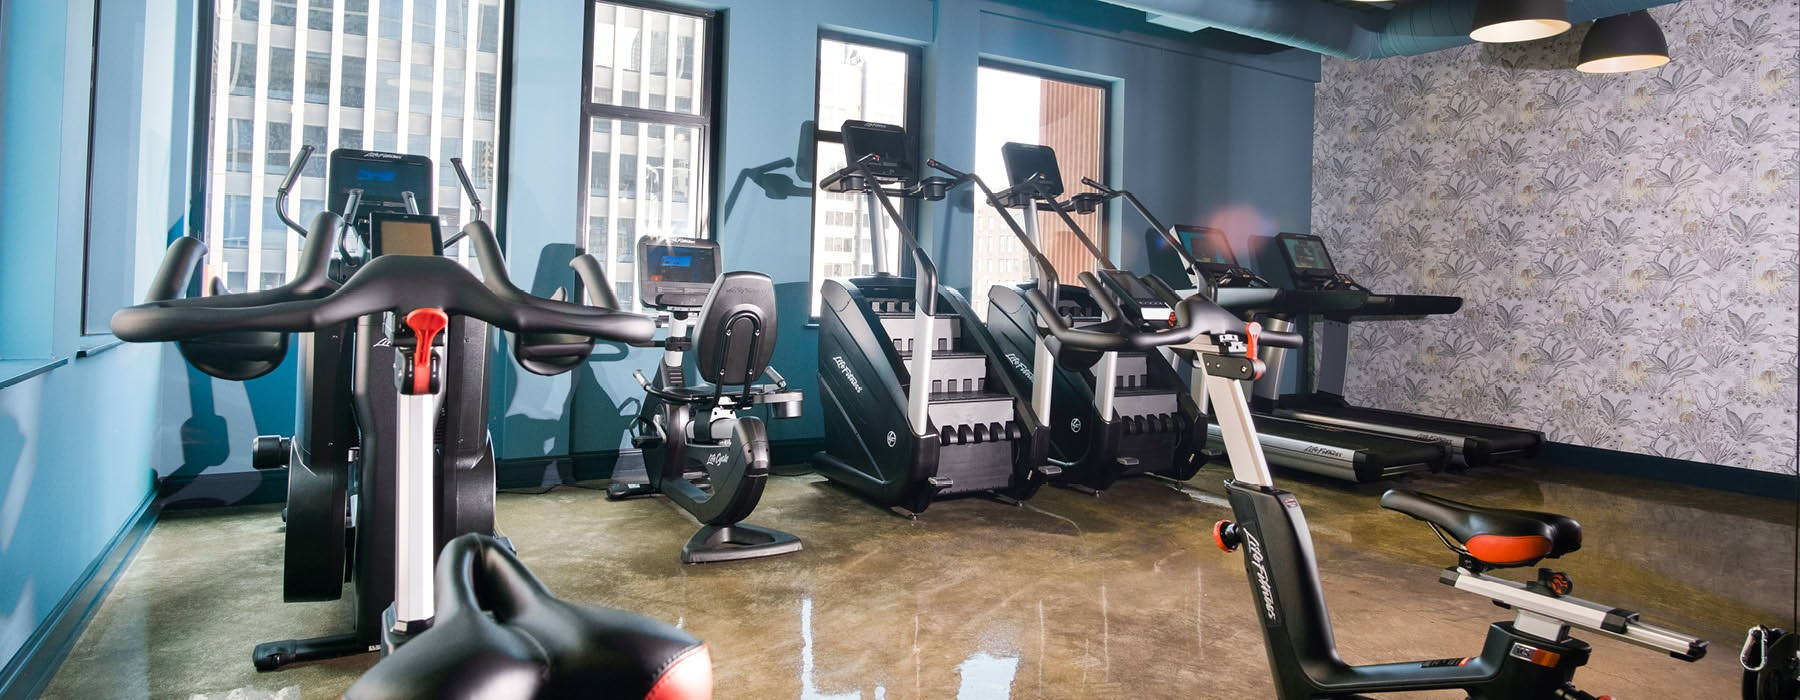 fitness center with ample lighting